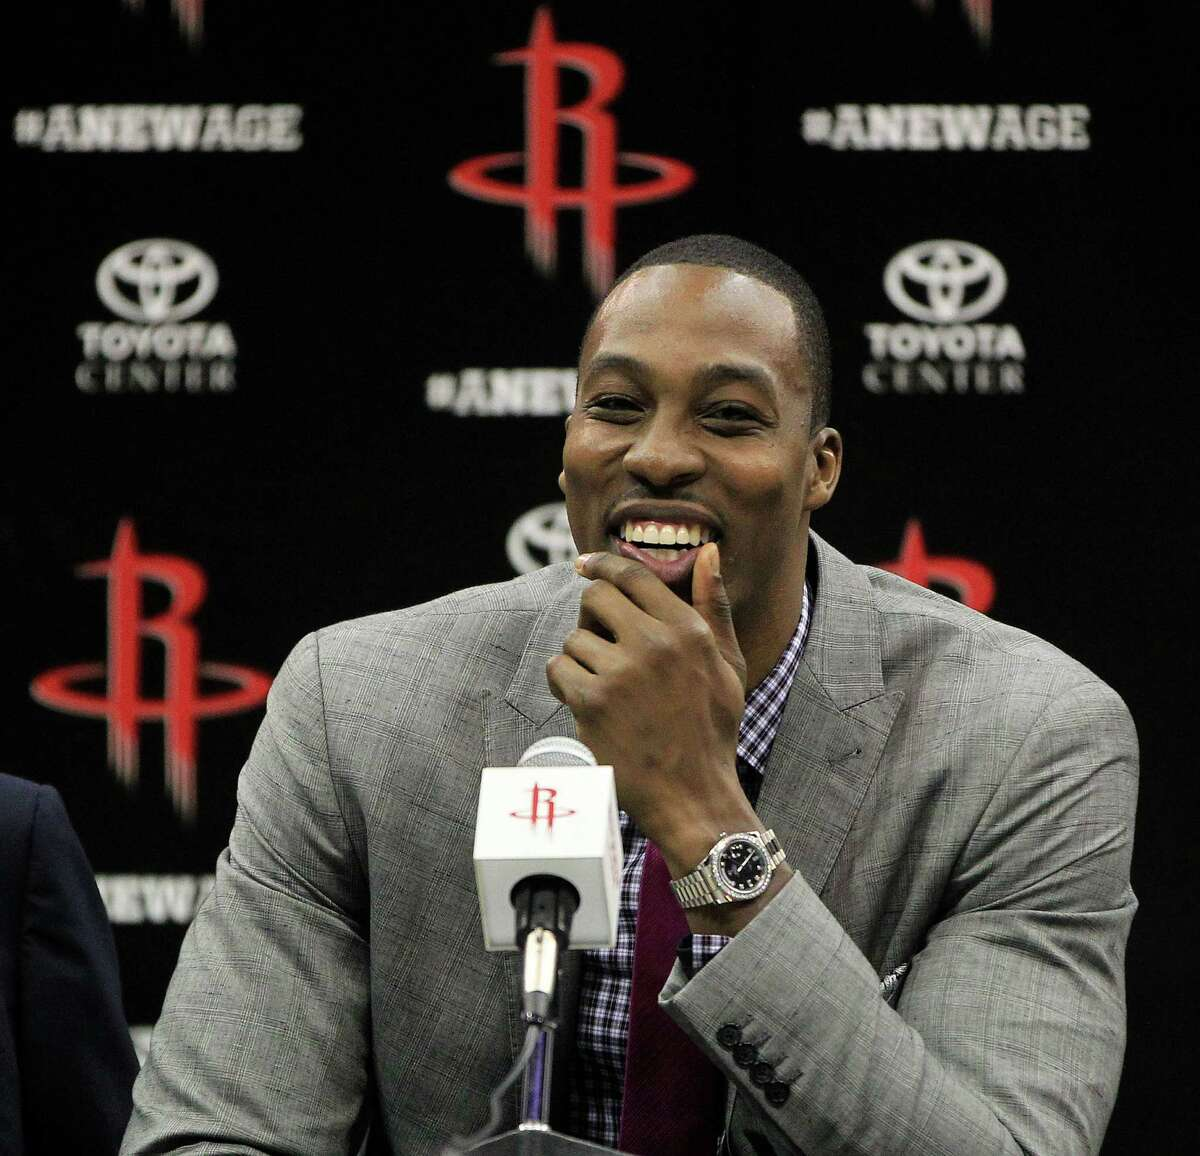 Houston Rocket's Dwight Howard smiles during the press conference and welcoming ceremony for him, Saturday, July 13, 2013, in Houston. ( Karen Warren / Houston Chronicle )